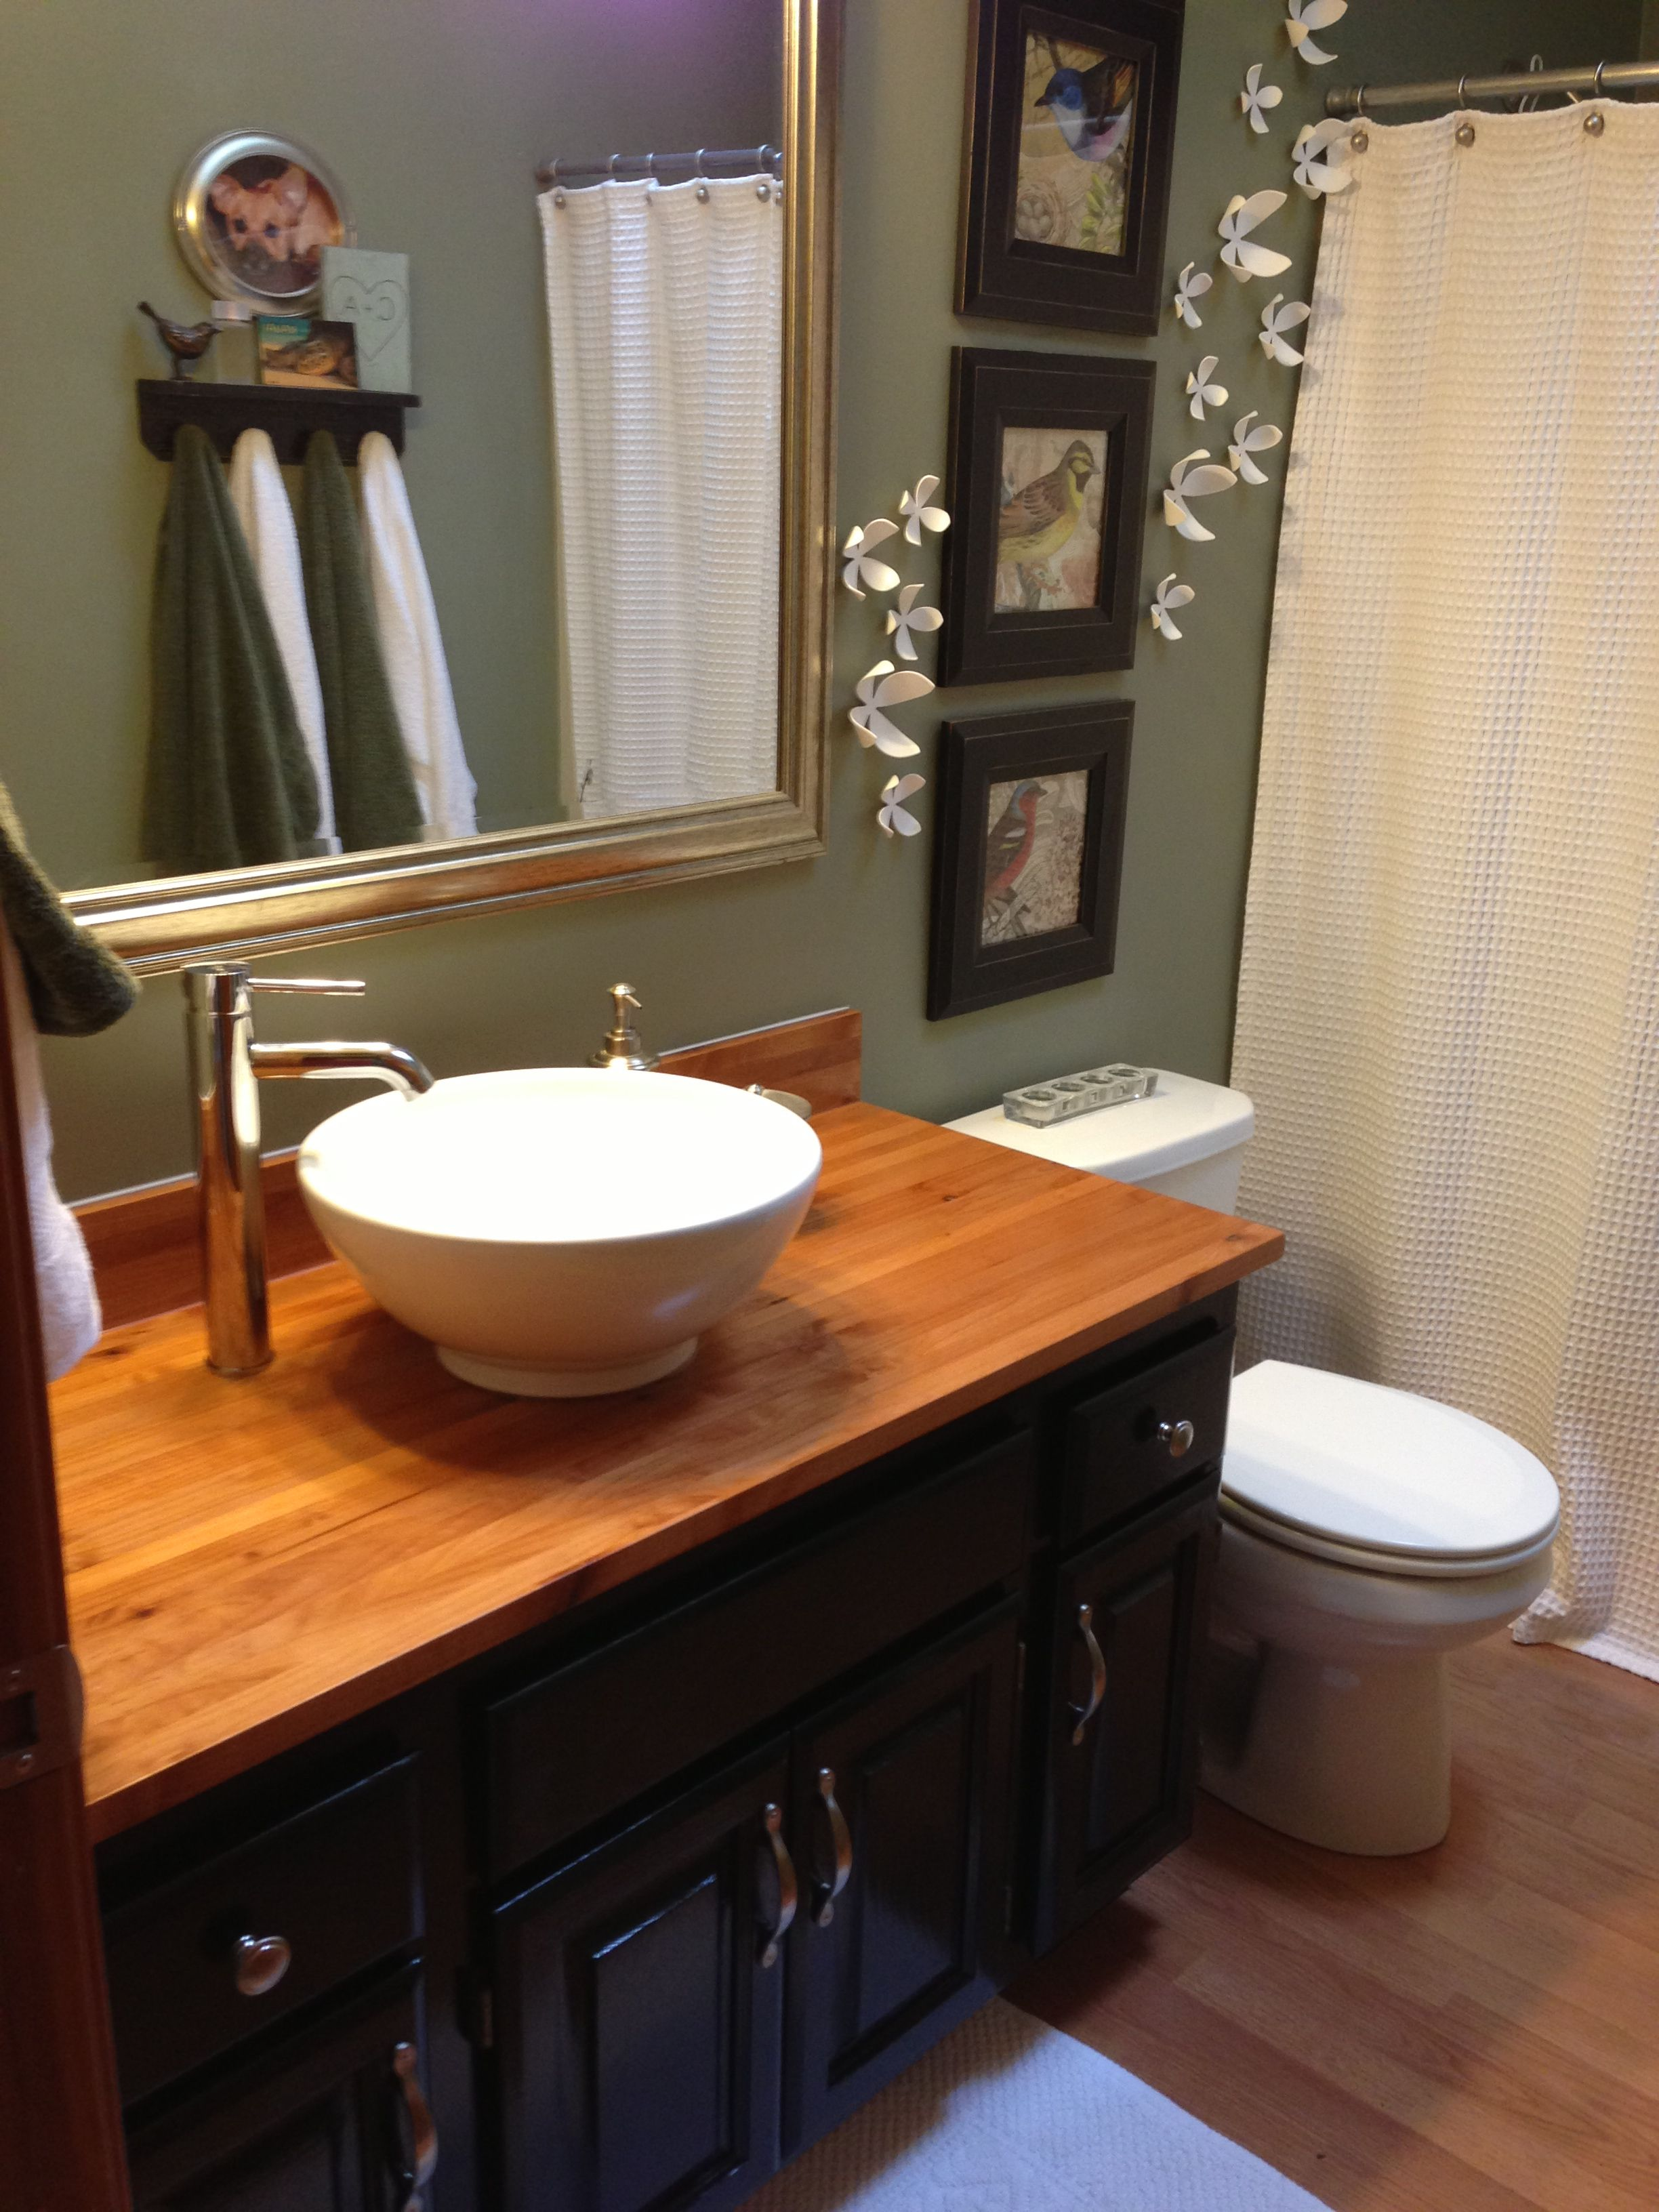 New Butcher Block Countertop With Vessel Sink I Painted The